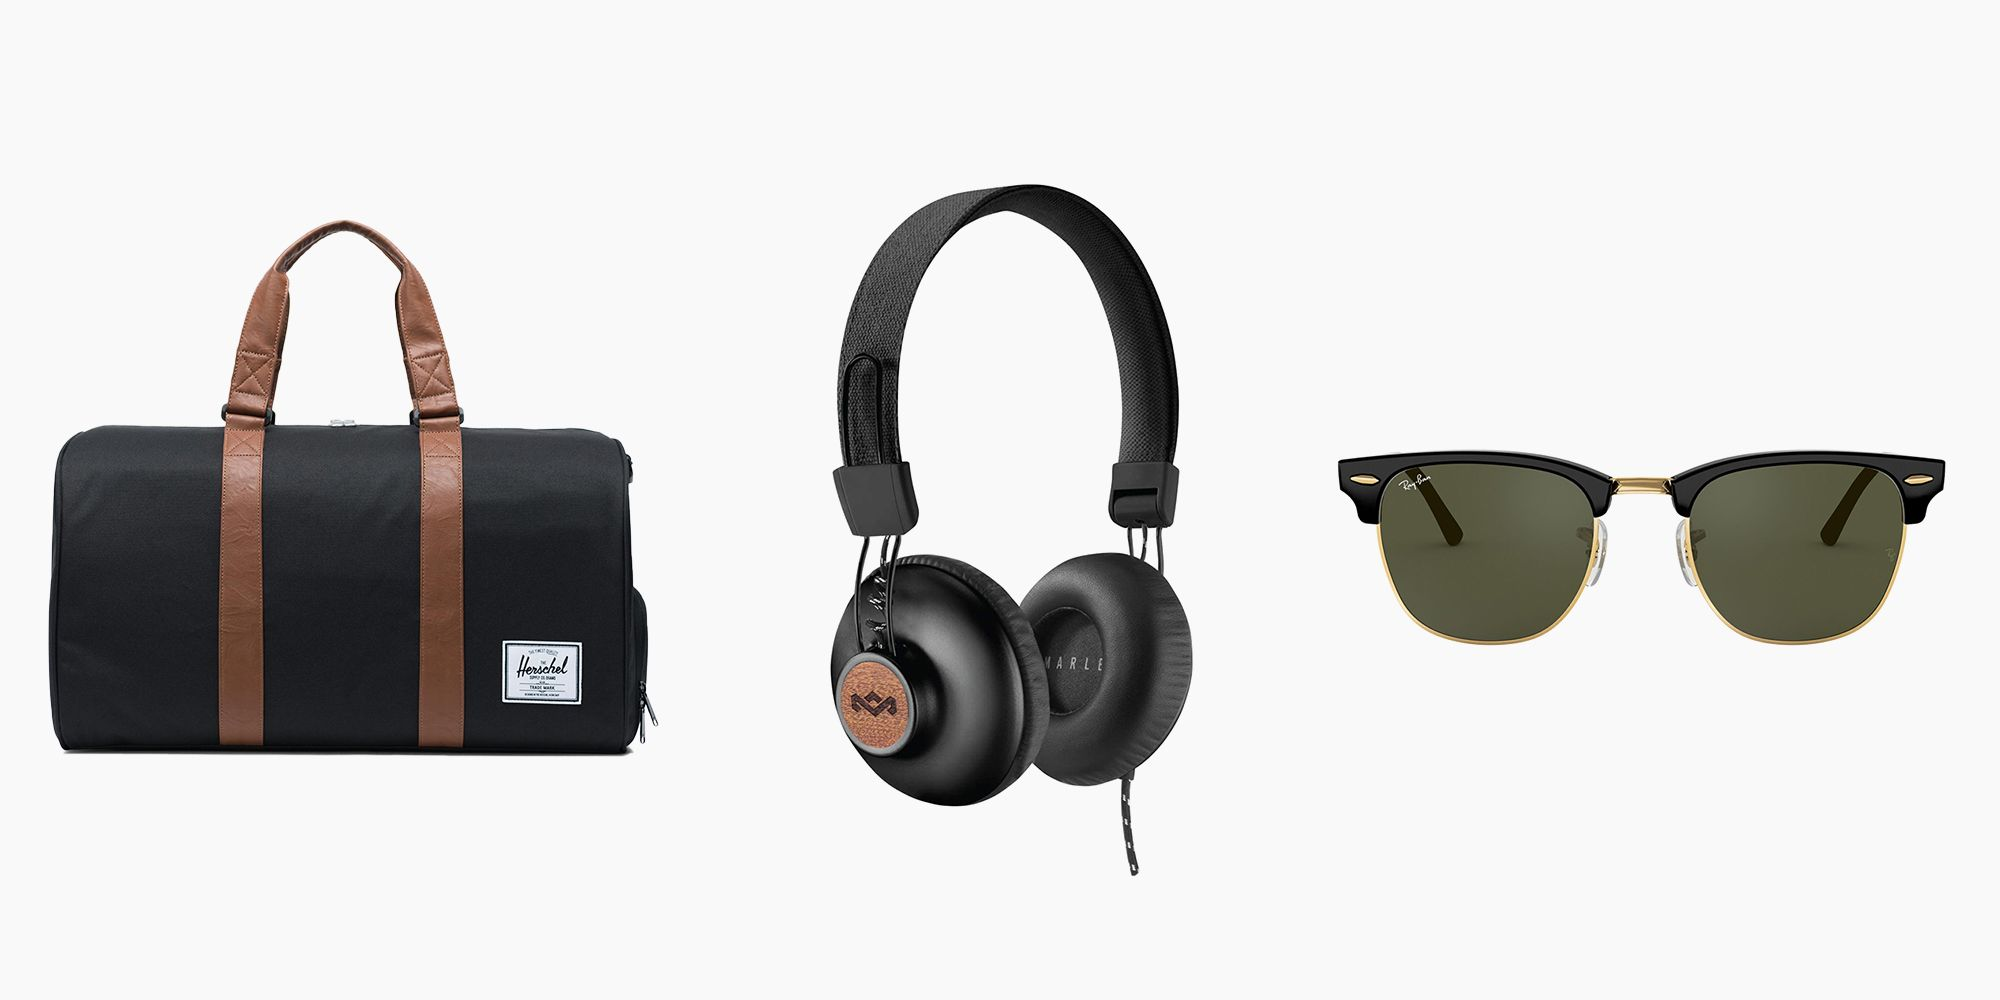 The Very Best Gifts for Men on Amazon